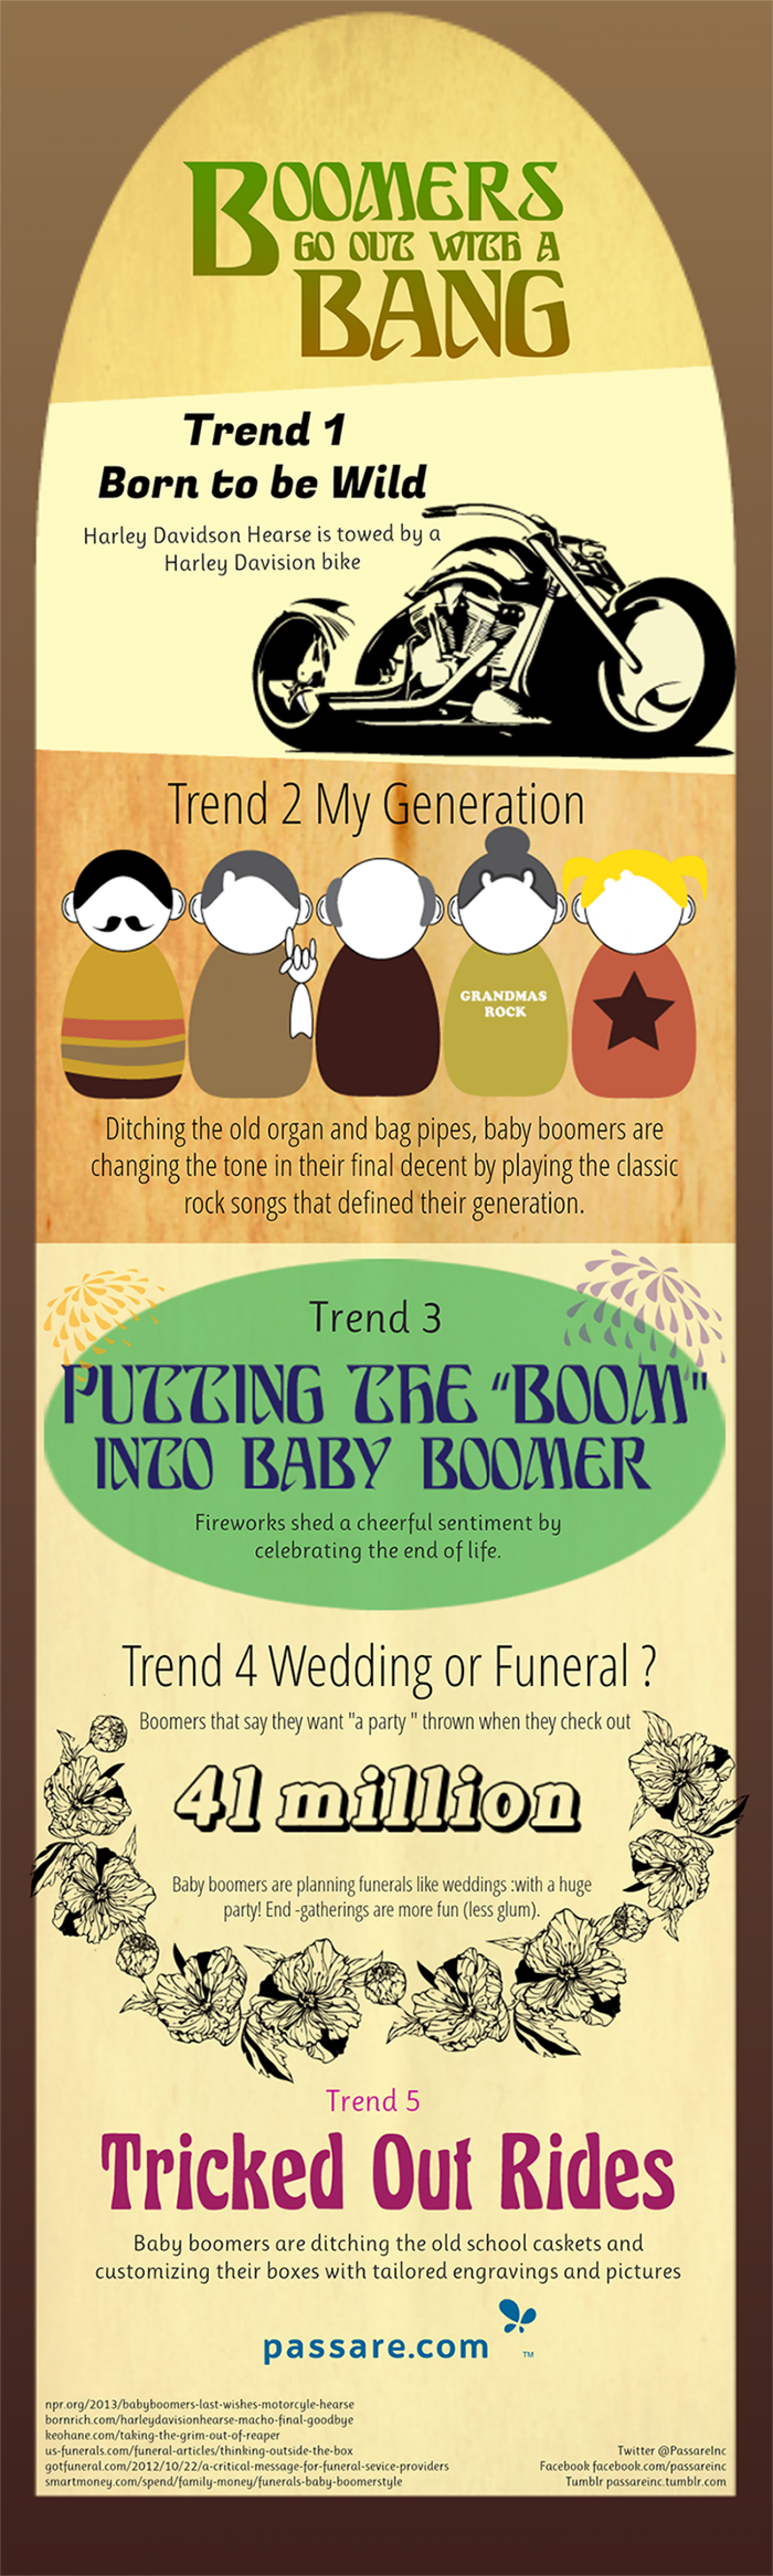 5 End-of-Life-Celebration Trends: Boomers Go Out With A Bang  Infographic